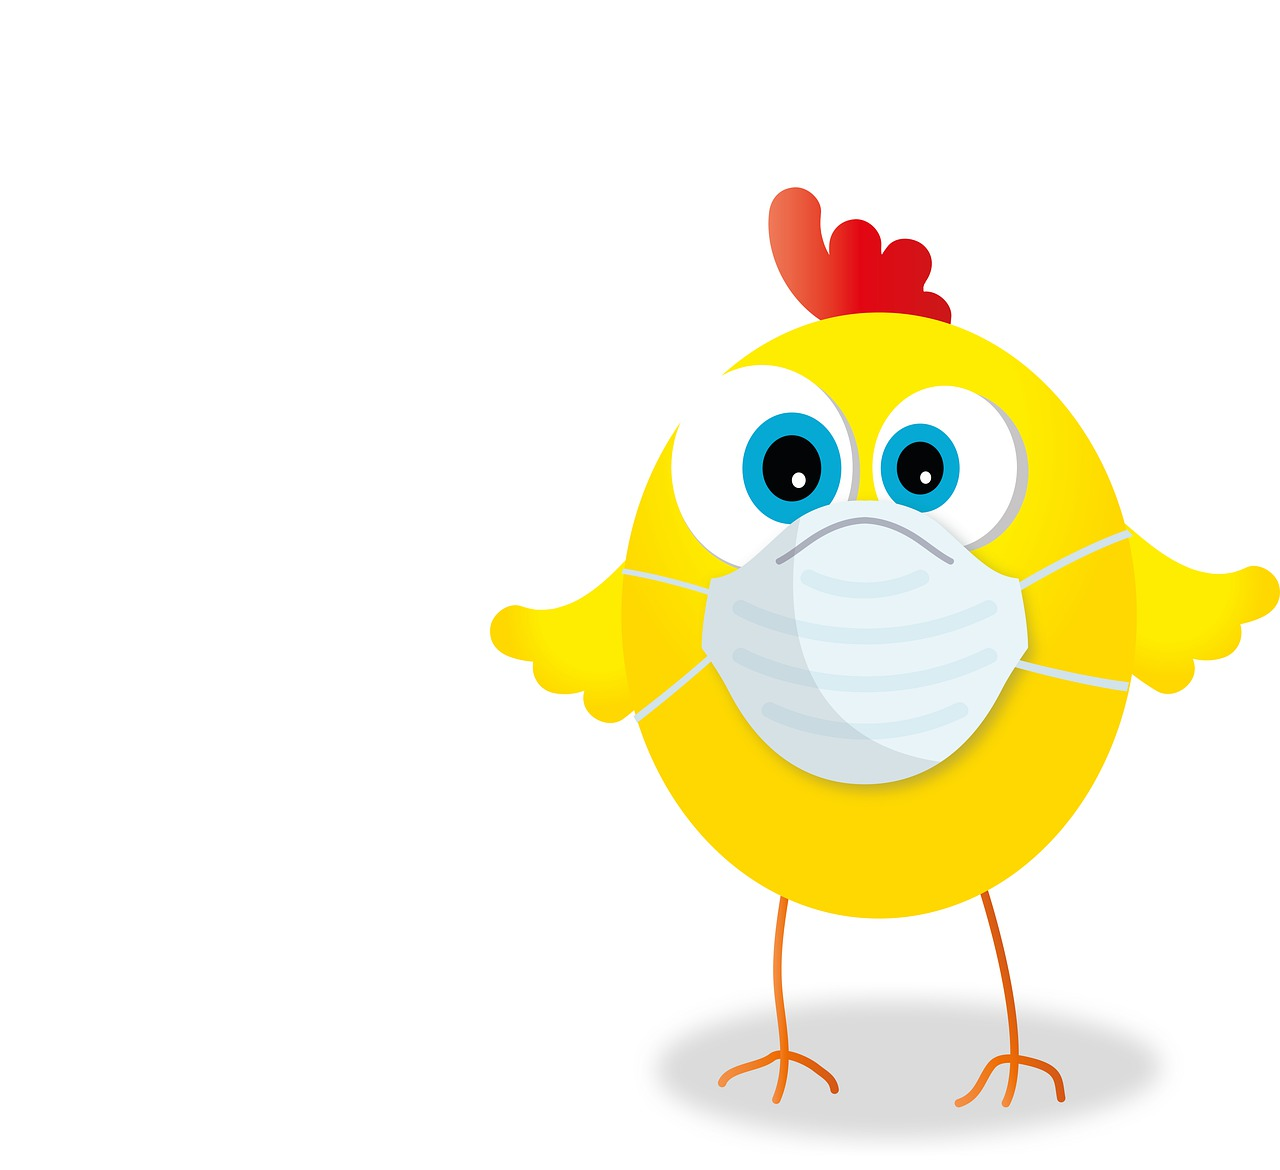 Chicken Mask Corona Free Image On Pixabay Find the perfect chicken mask stock illustrations from getty images. https creativecommons org licenses publicdomain